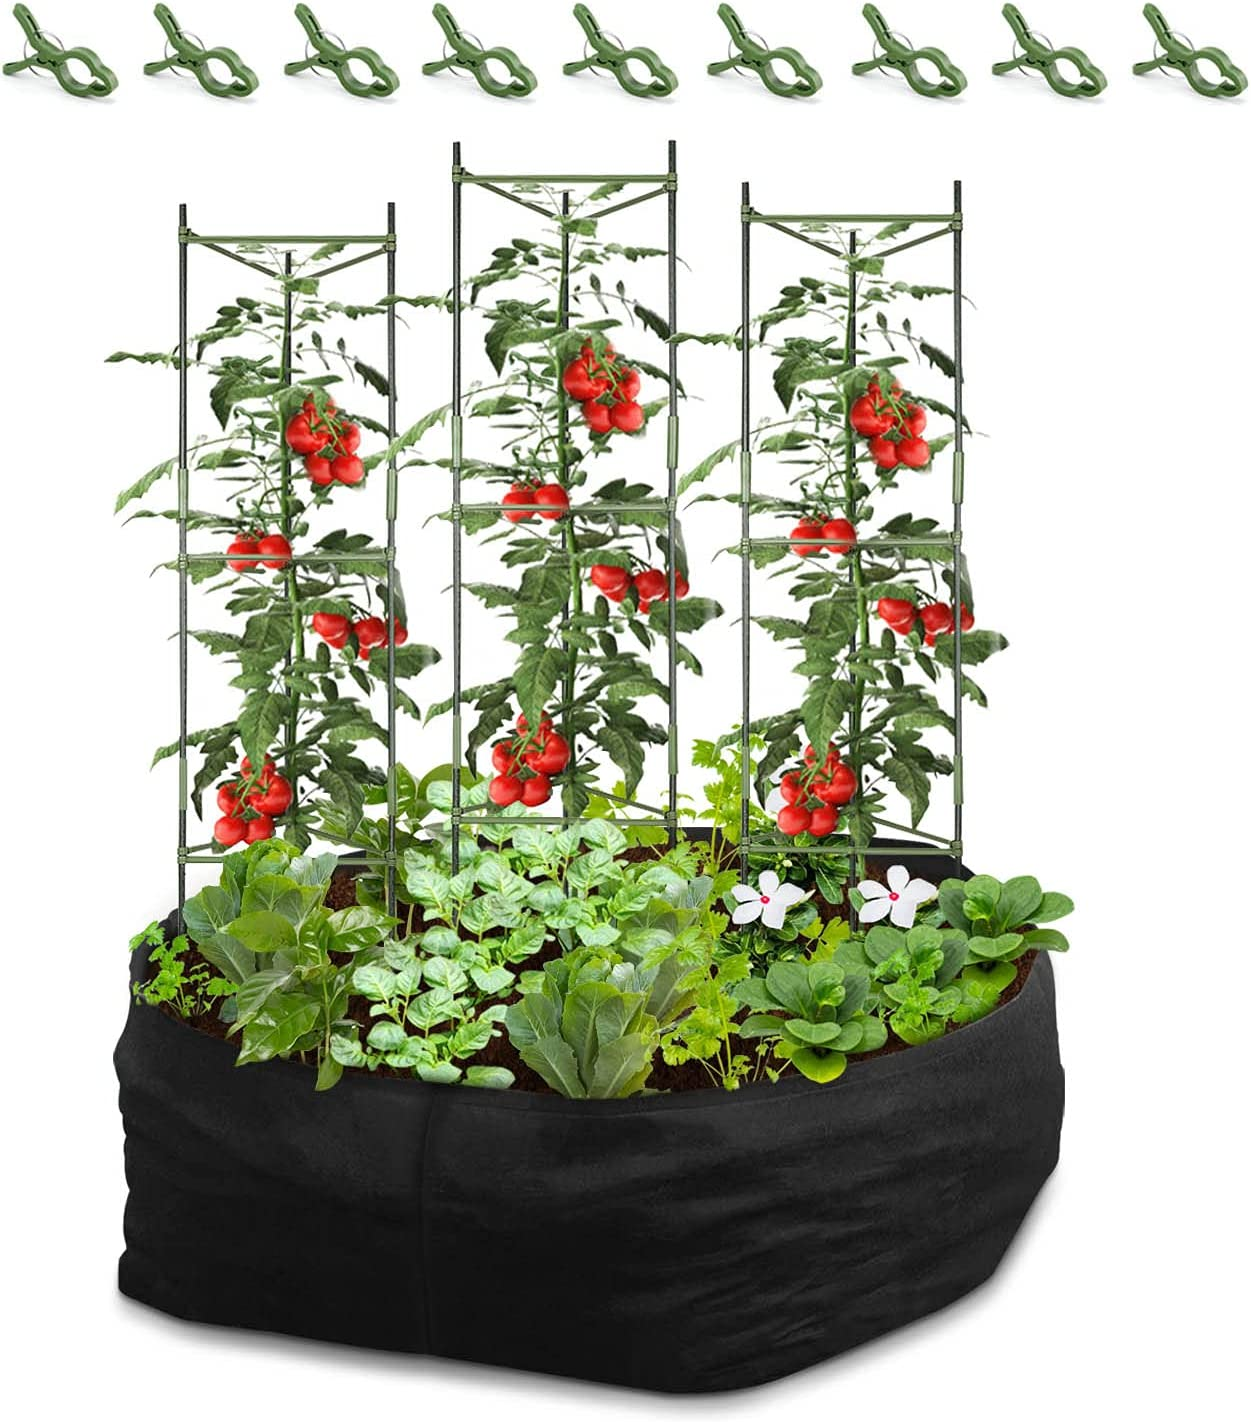 CEED4U 3 Packs 51 Inches Height Plant Cages with 3 x 3 Feet Fabric Raised Garden Bed and 9 Pcs Clips, Assembled Tomato Garden Cage Stakes for Climbing Plants, Tomatoes, Vegetables, Fruits